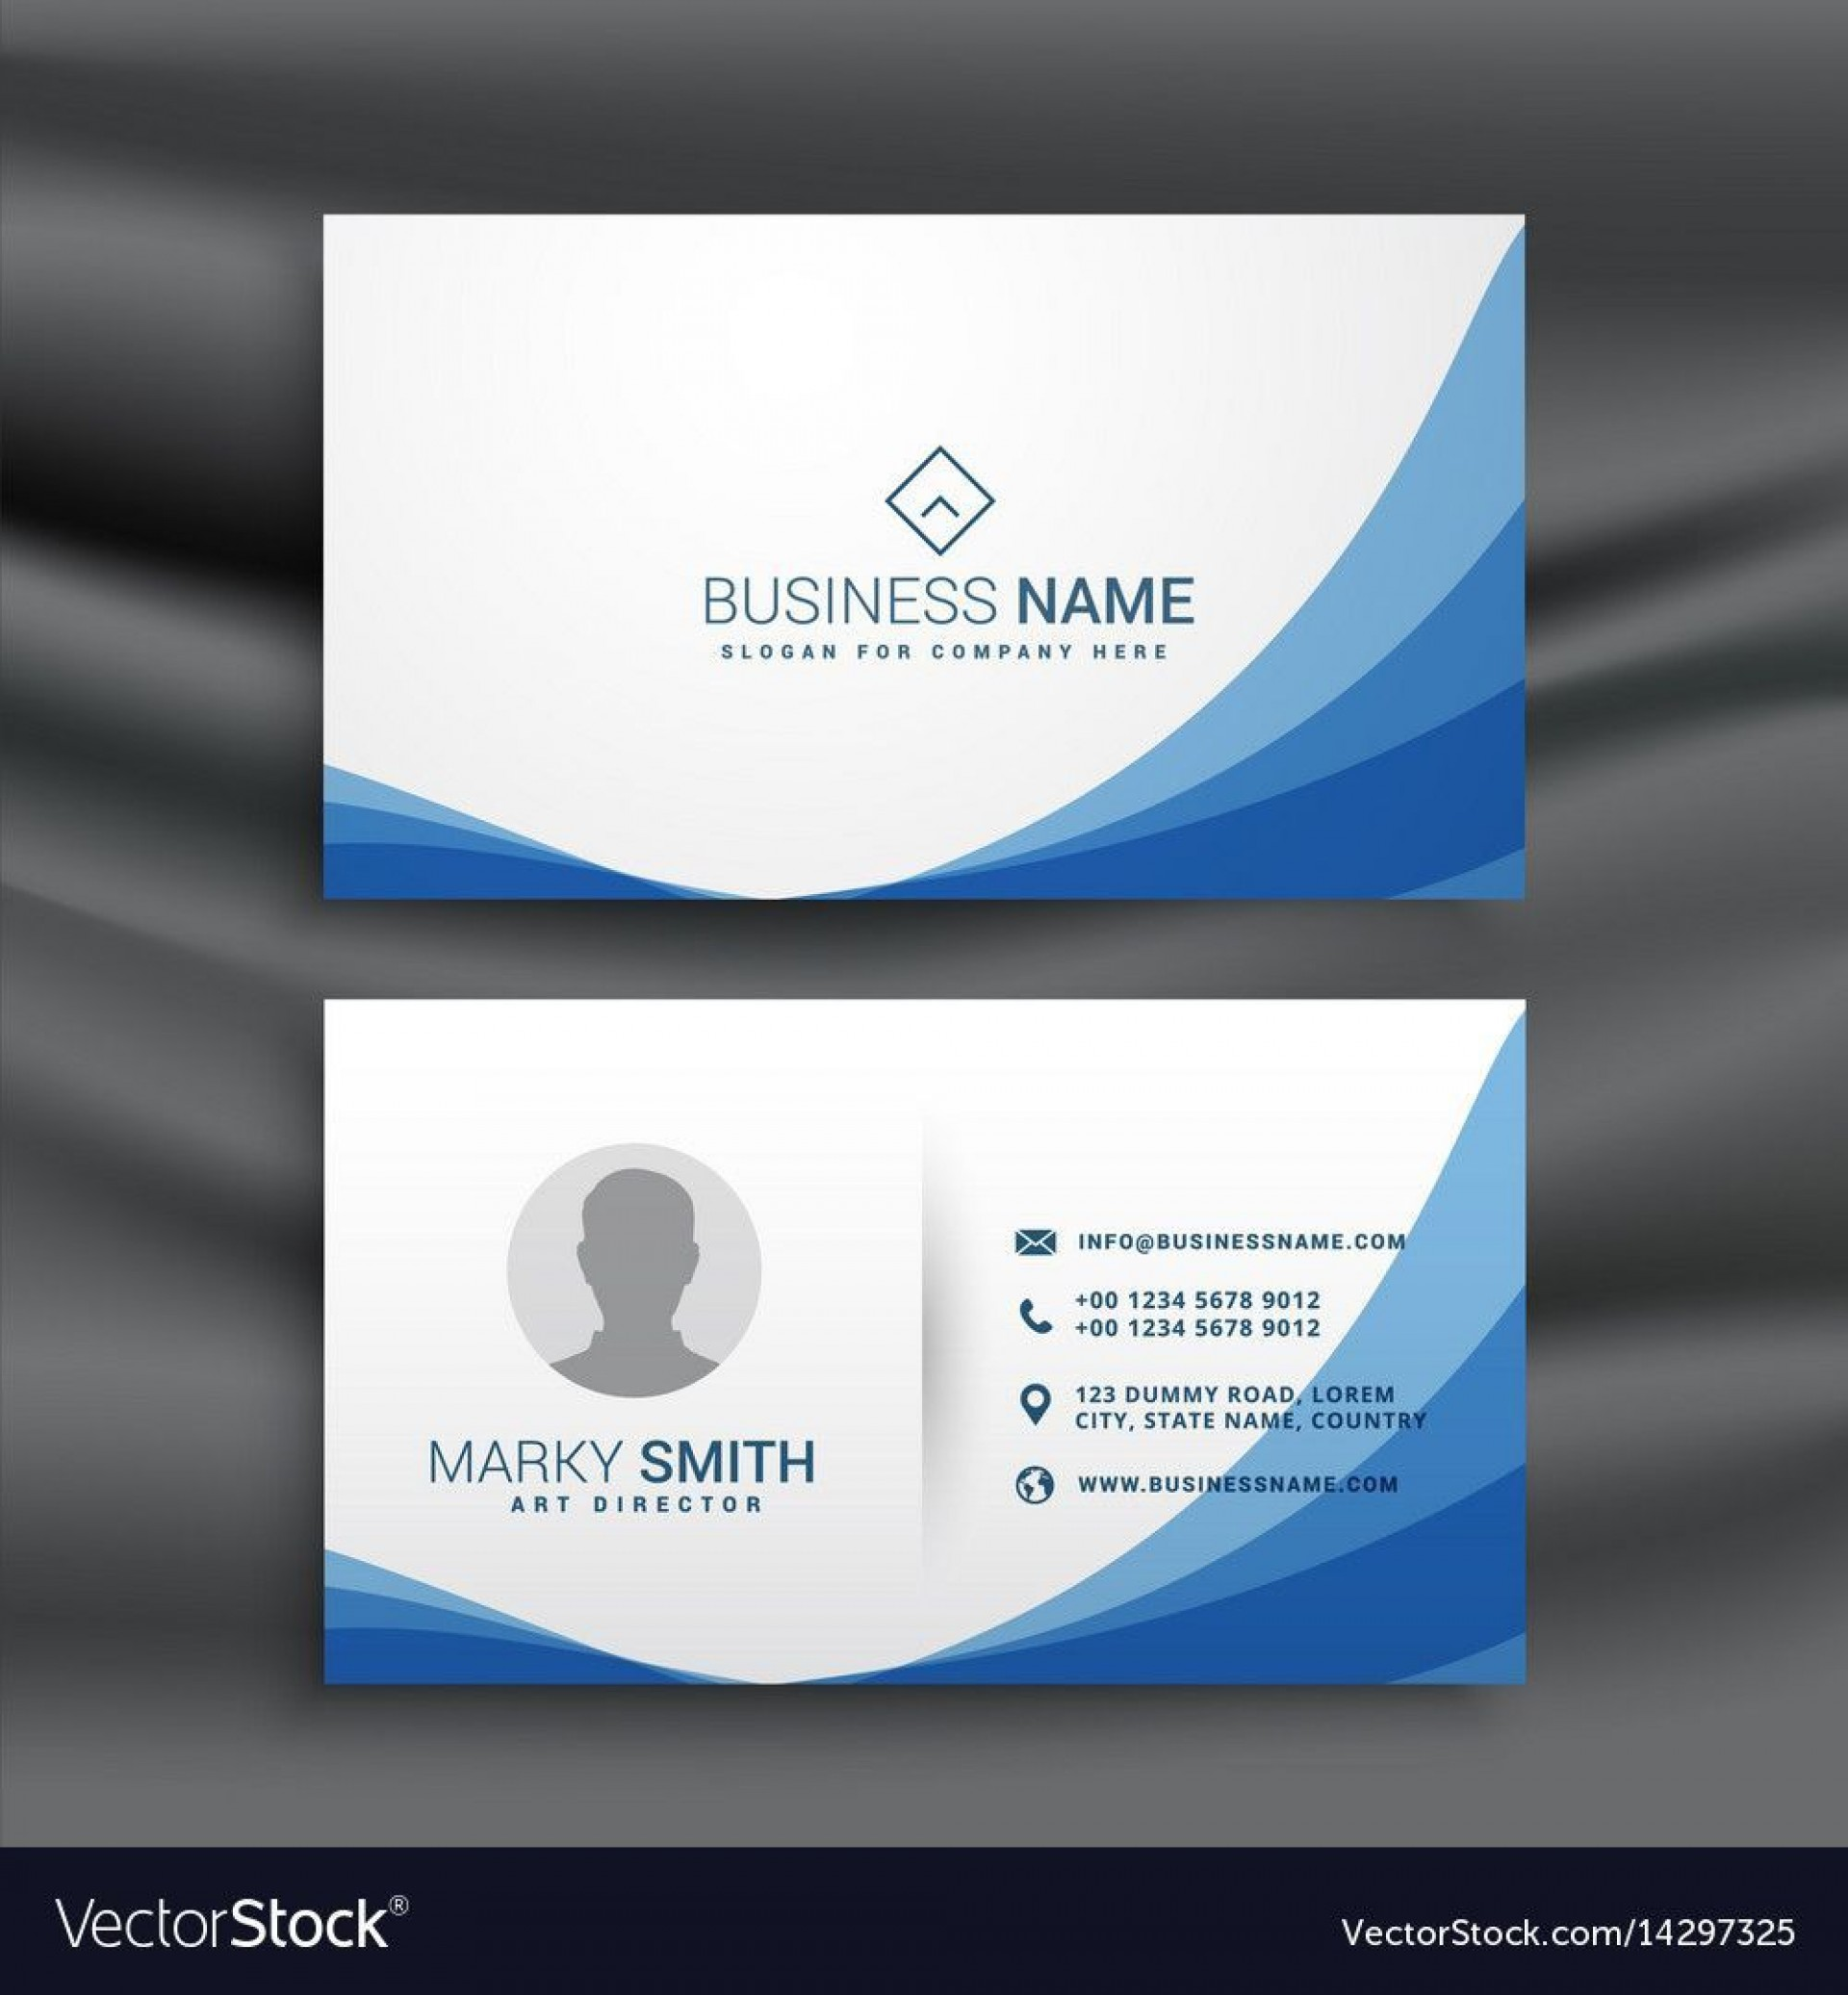 001 Amazing Simple Visiting Card Design Psd High Definition  Minimalist Busines Template Free File Download In Photoshop1920